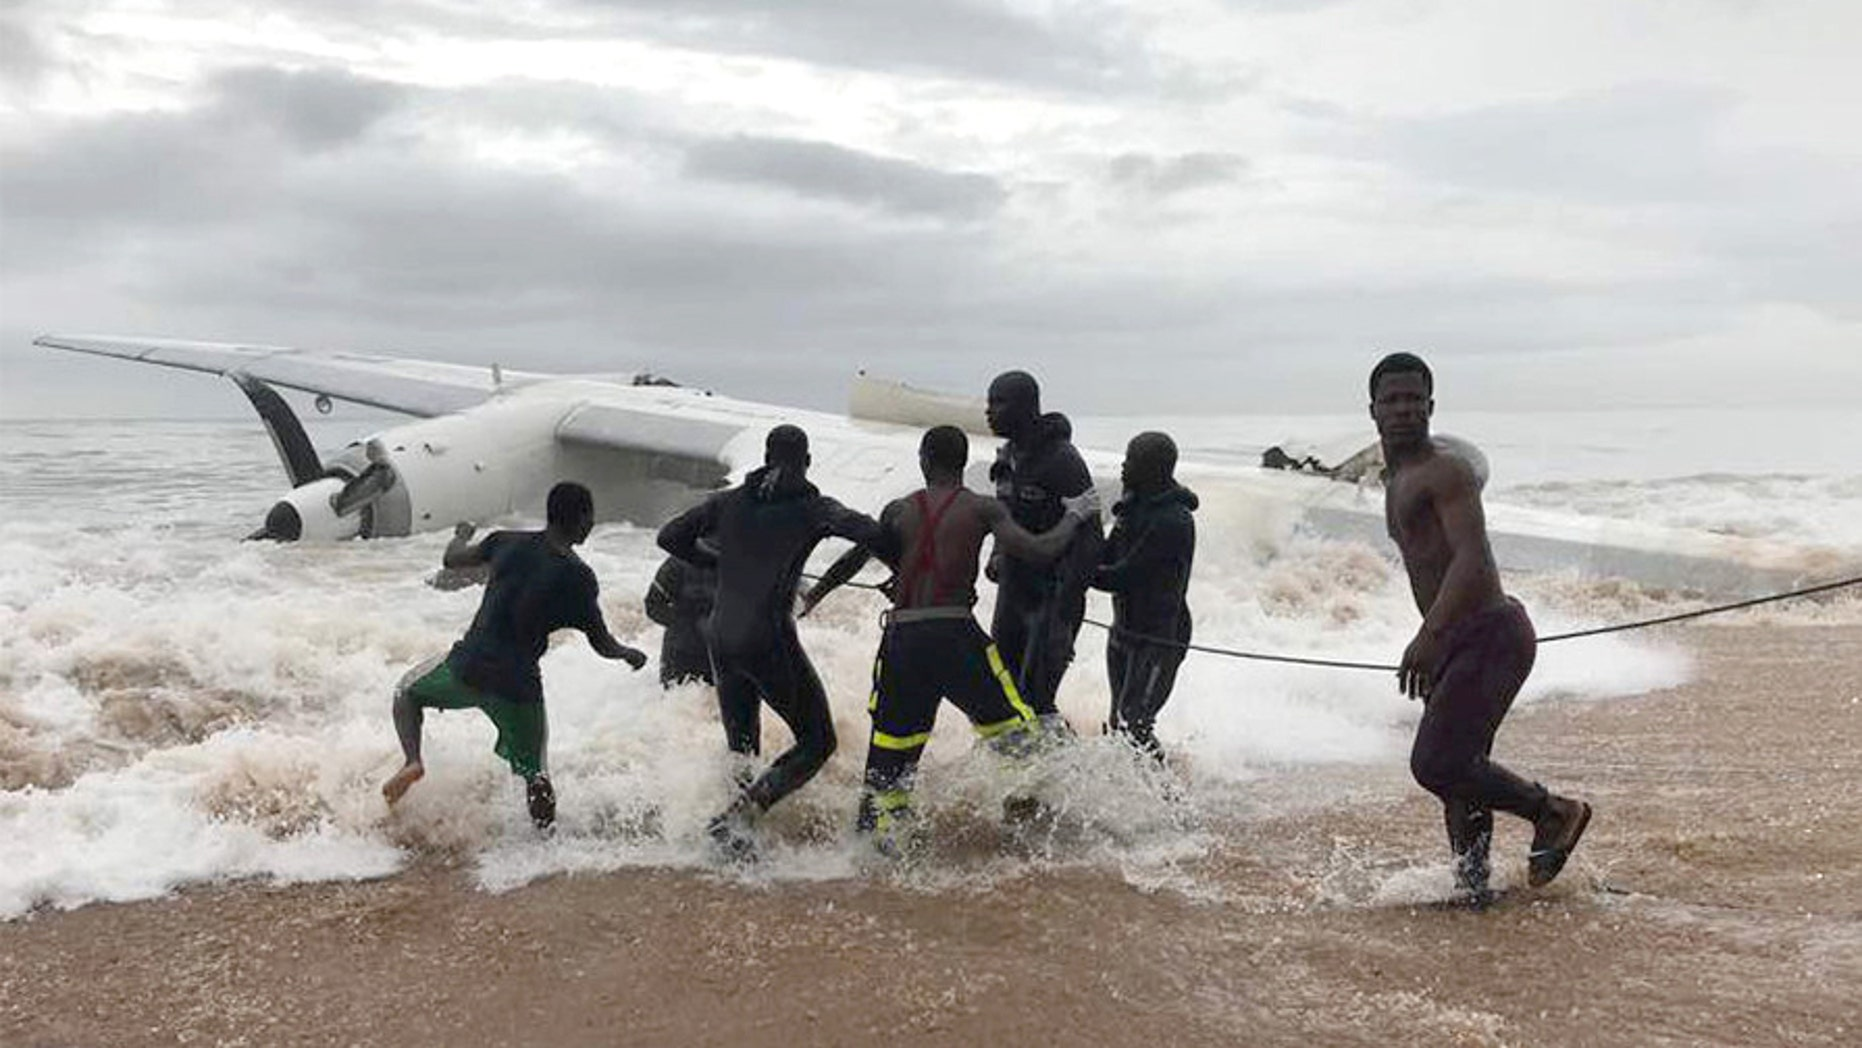 People pull the wreckage of a propeller-engine cargo plane after it crashed in the sea near the international airport in Ivory Coast's main city, Abidjan, October 14, 2017. REUTERS/Ange Aboa - RC197222A600